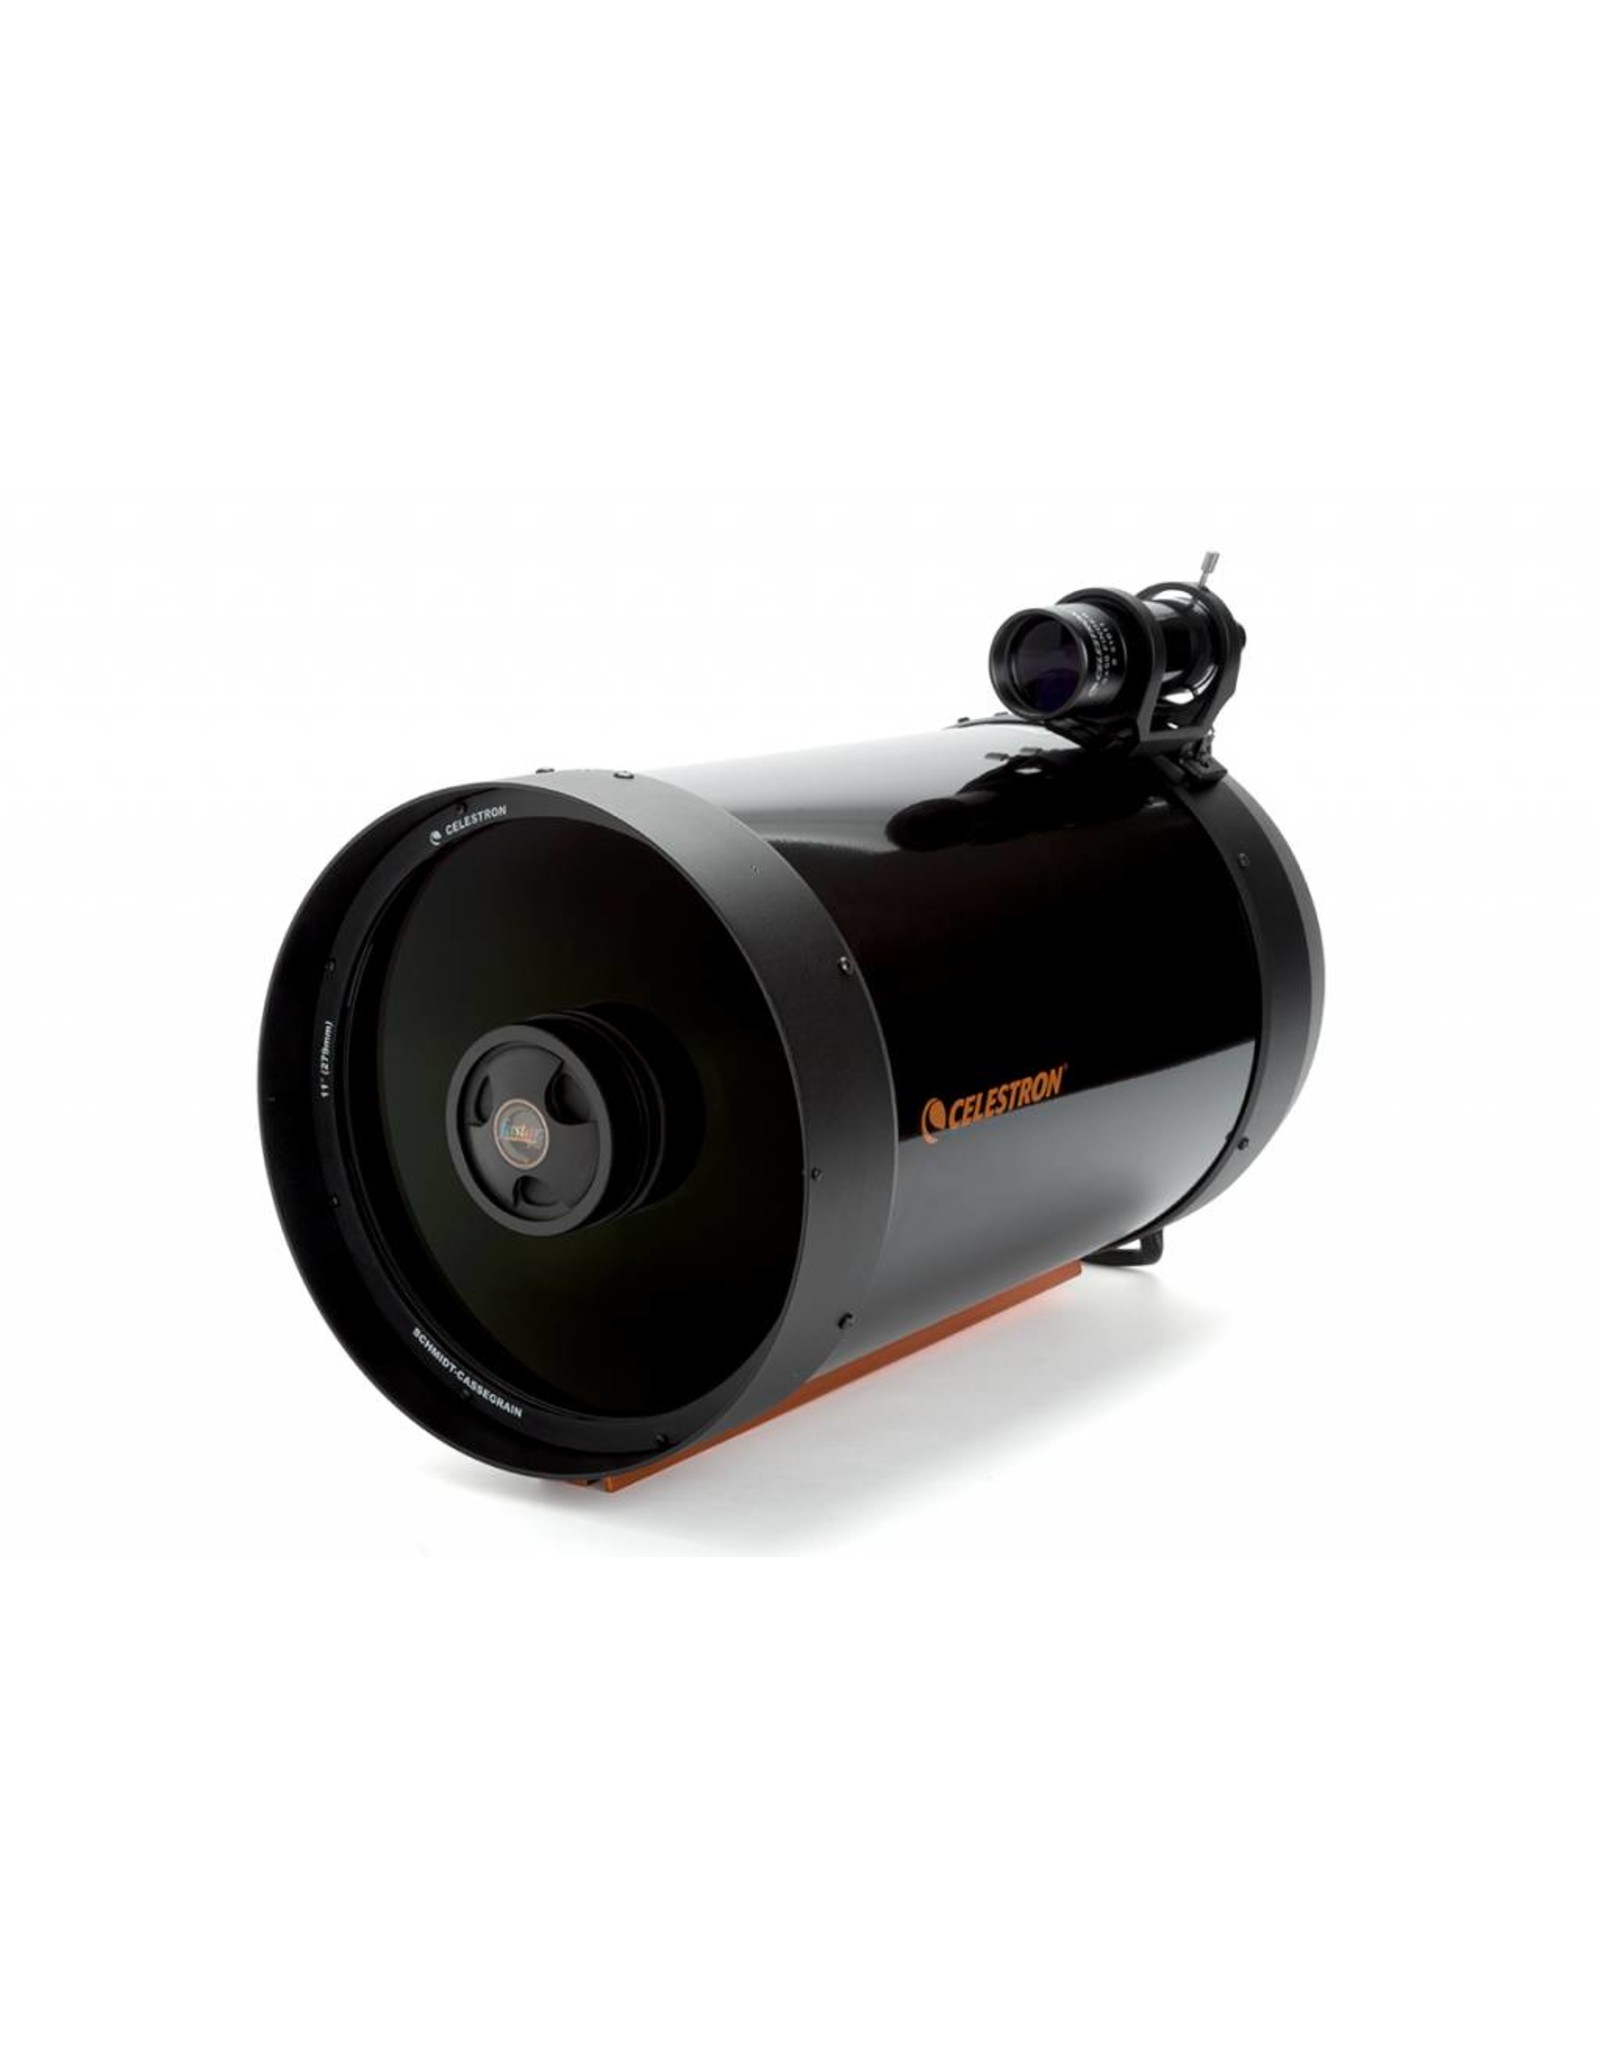 Celestron Celestron C11-A XLT (CG5) Optical Tube Assembly